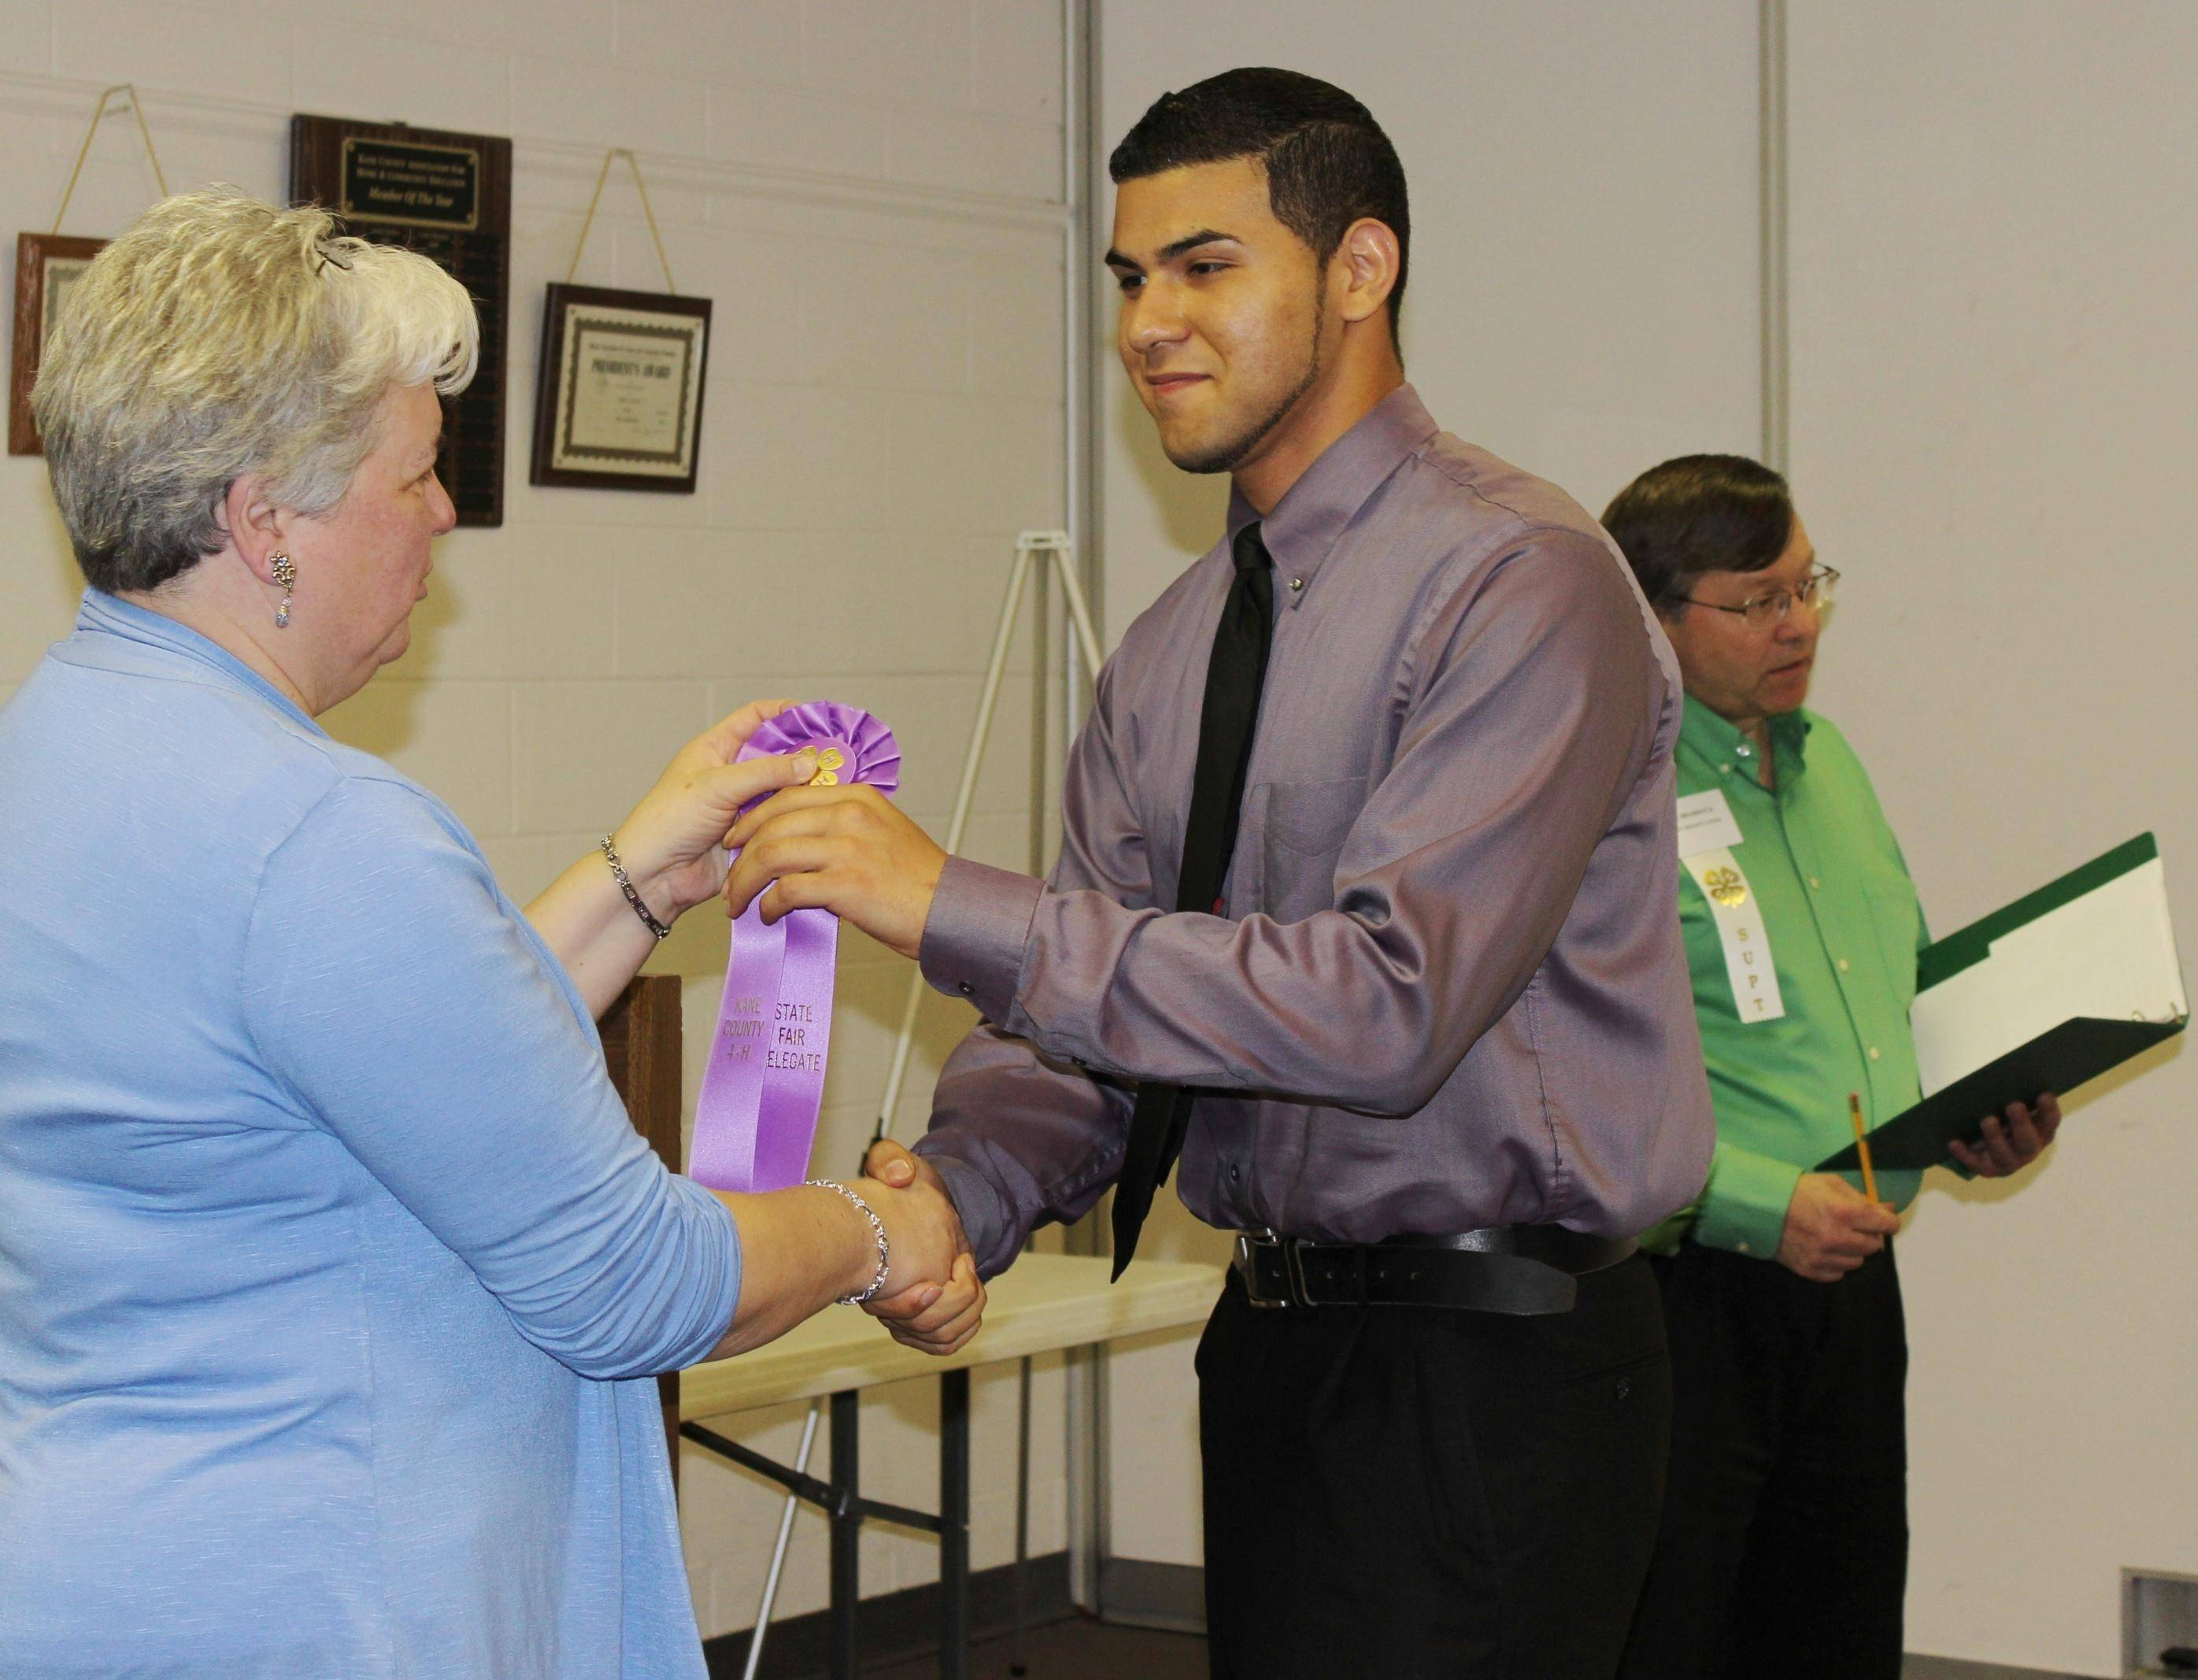 4-H'er Marcos Marquez of St. Charles earned a ticket to the state competition with his illustrated speech in the Kane County competition. Marquez spoke about physical training with both aerobic and anaerobic techniques.